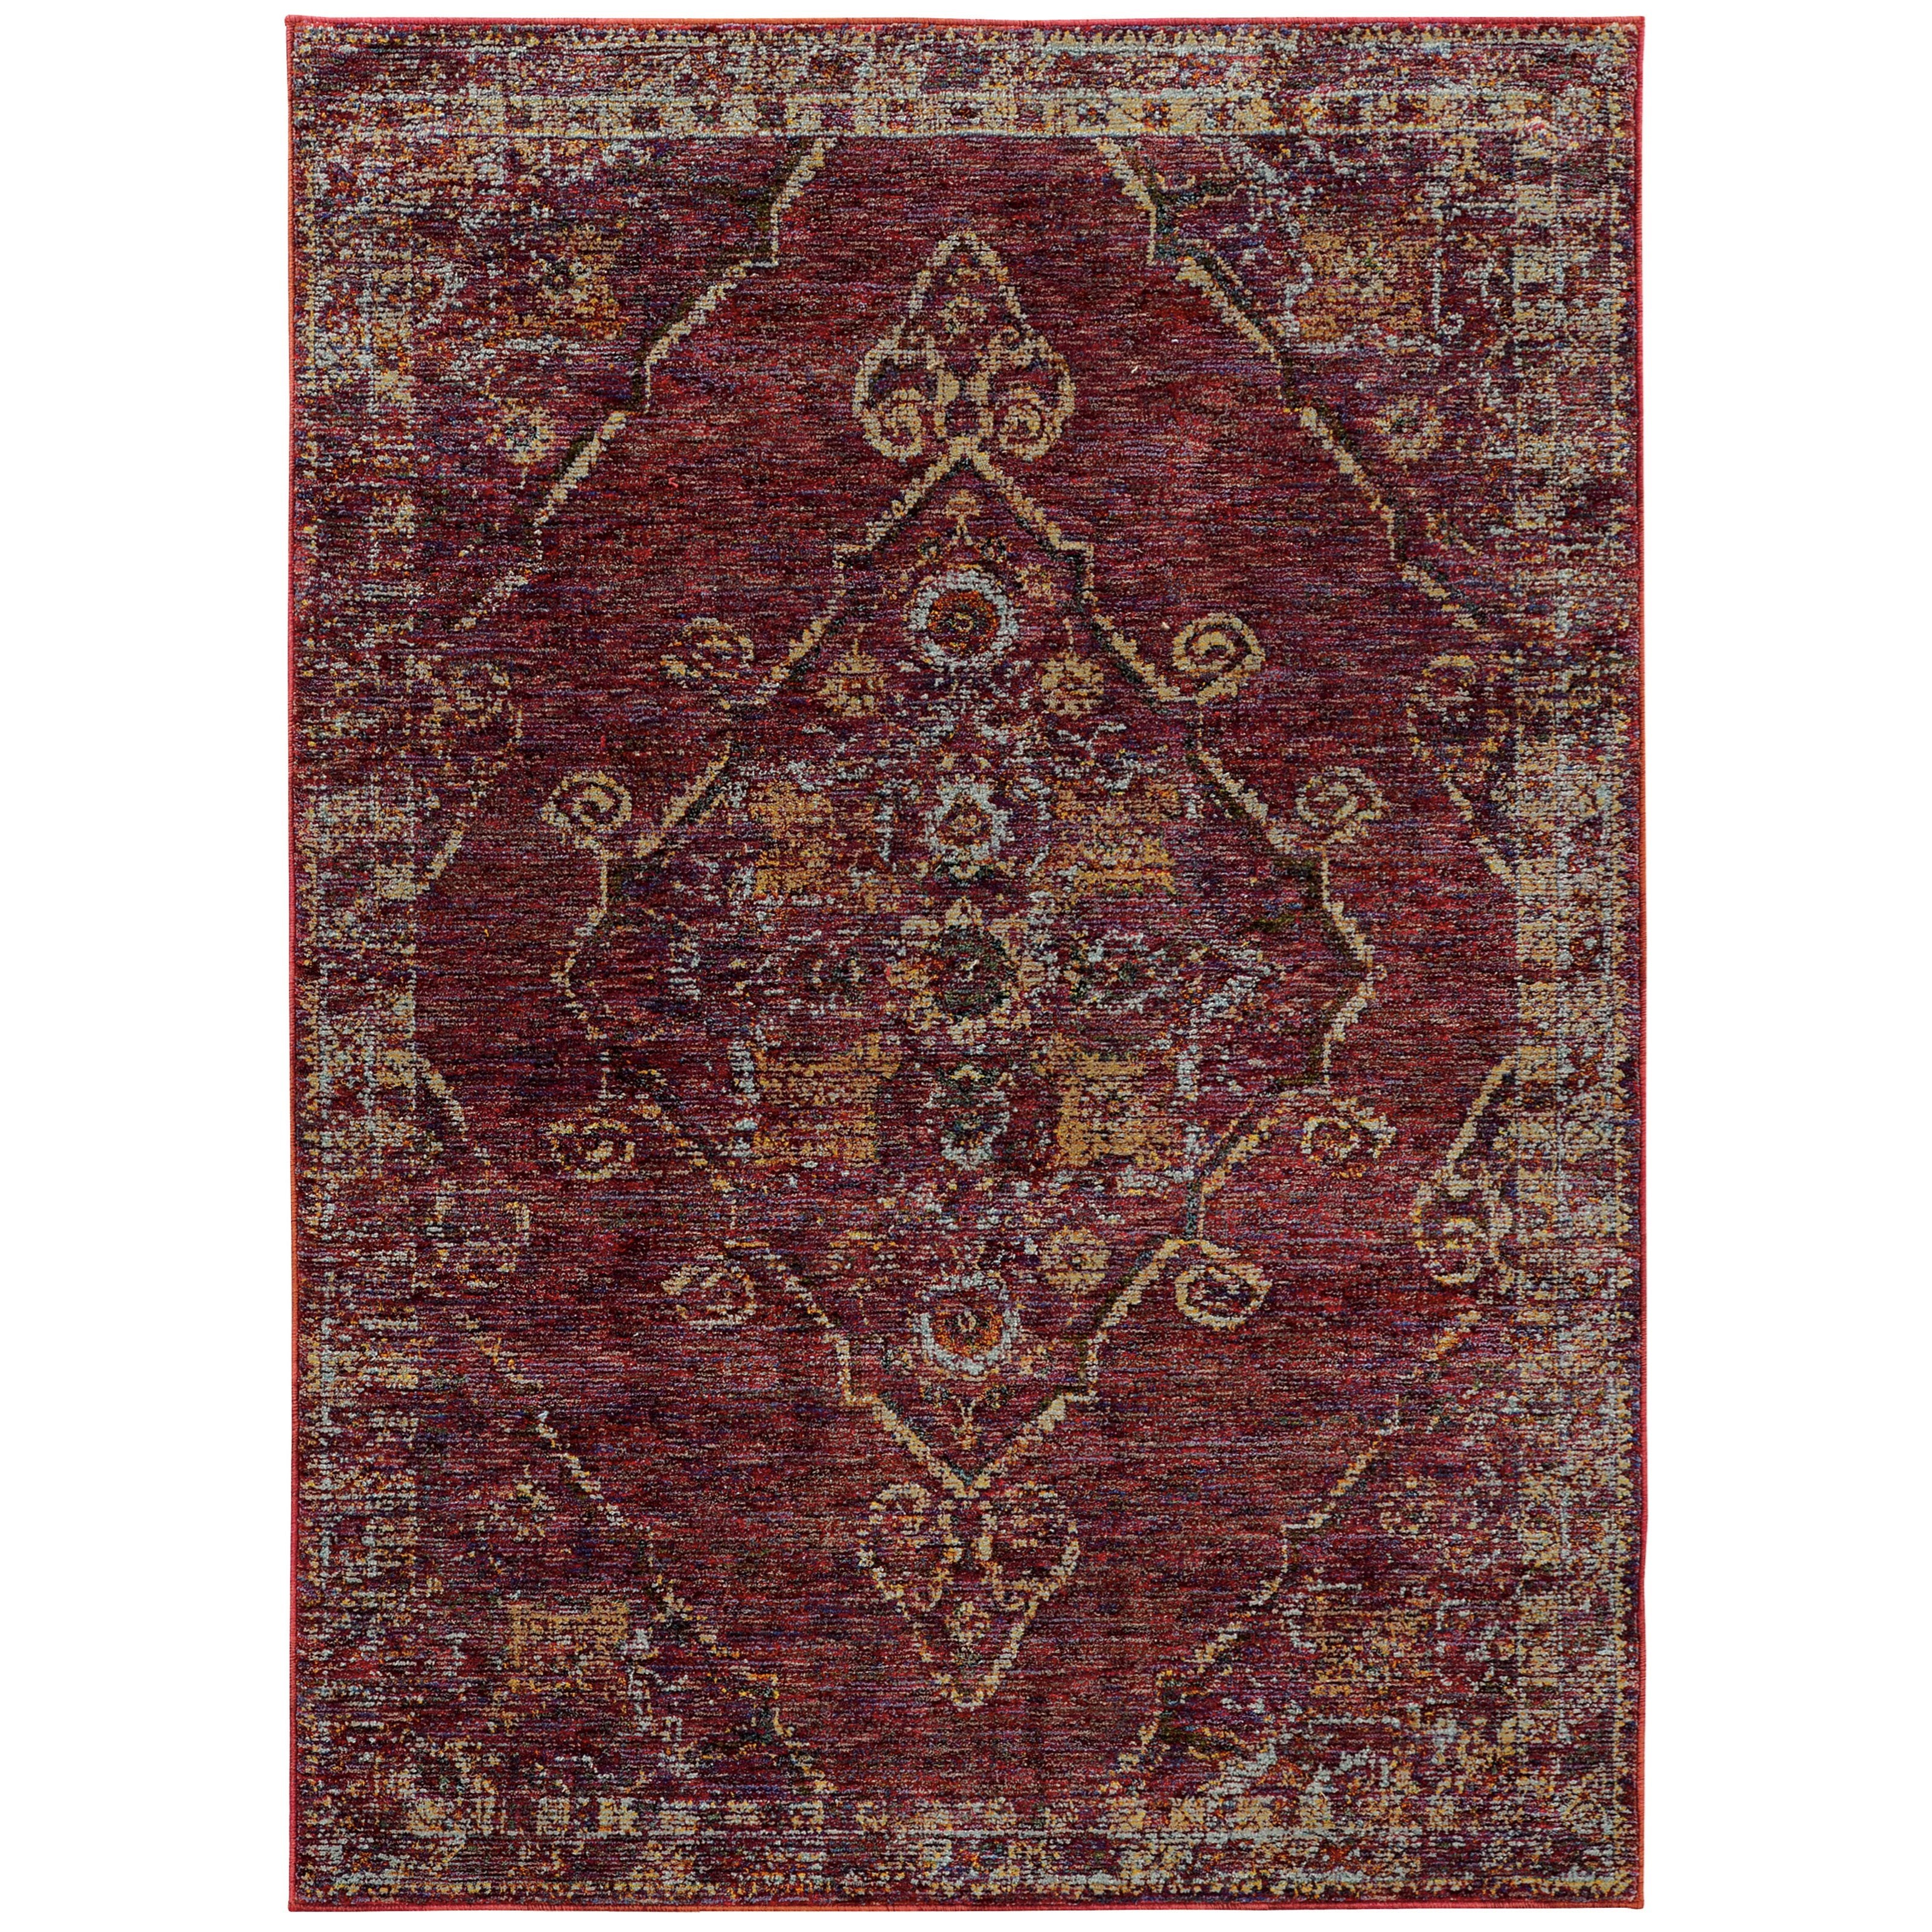 "Andorra 10' 0"" X 13' 2"" Rectangle Rug by Oriental Weavers at Jacksonville Furniture Mart"